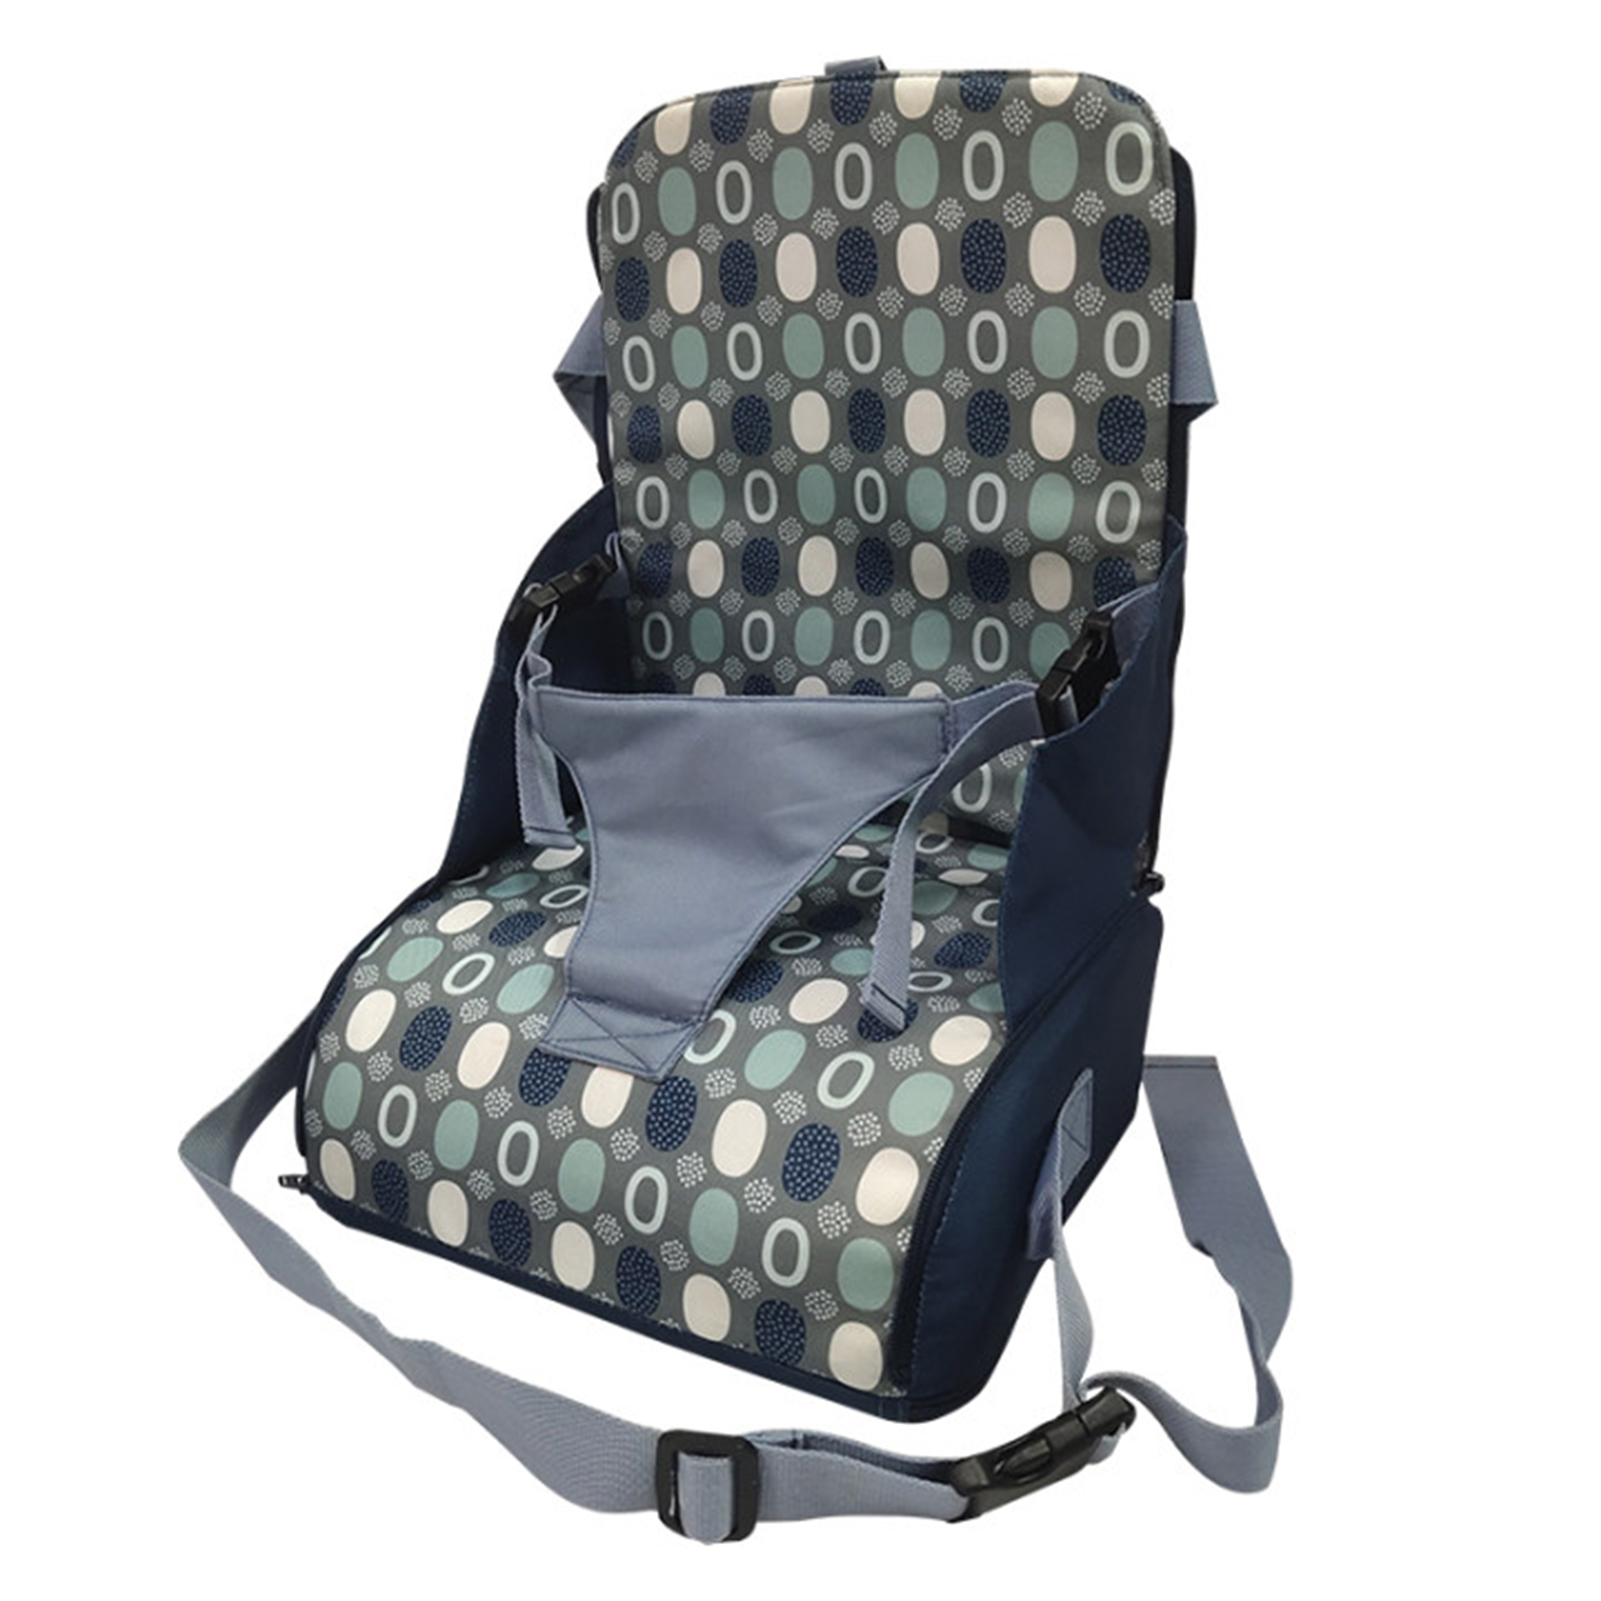 High Chair Booster Seat Adjustable Booster Chair For Baby Kids Student Cushion Removable Adjustment Portable Baby Seat Cushion